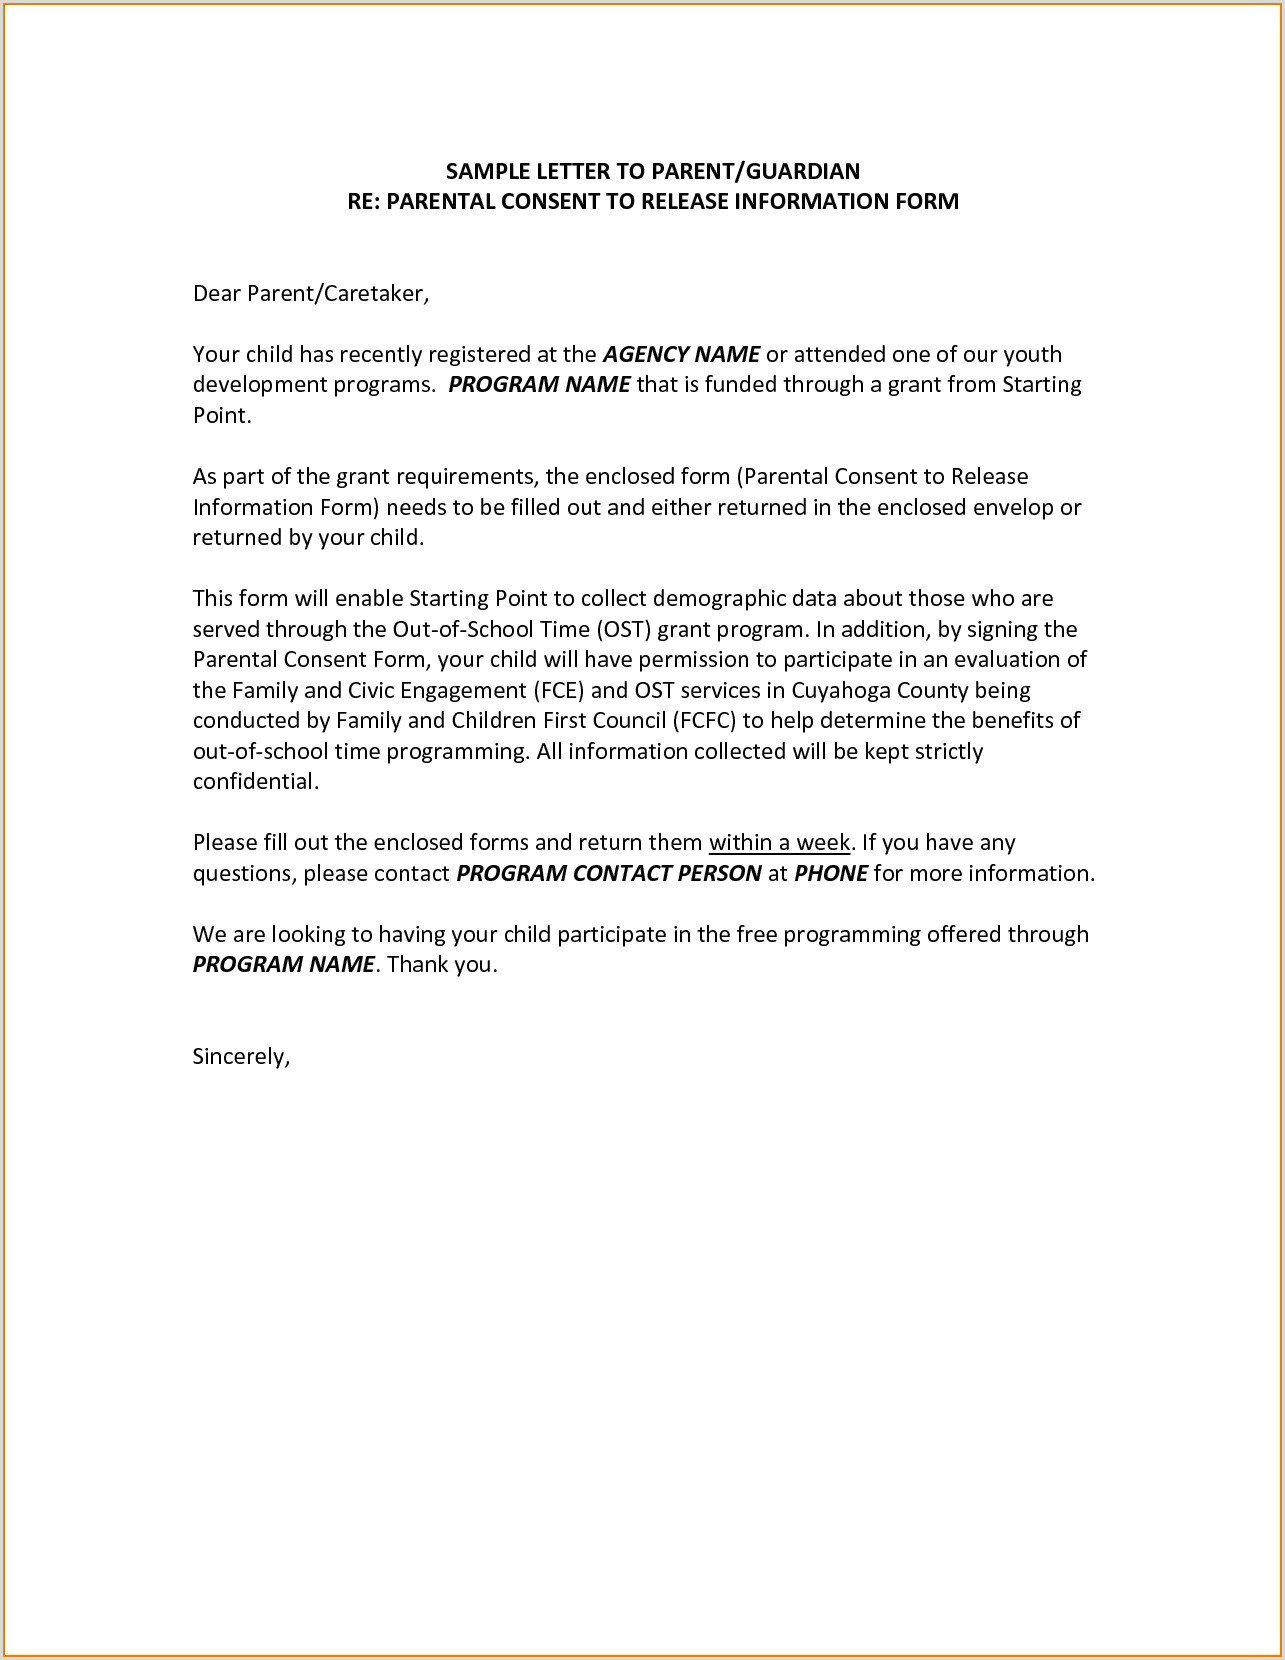 Sample Medical Authorization Letter for Child Parental Consent form for Travel Template Traveling Minor